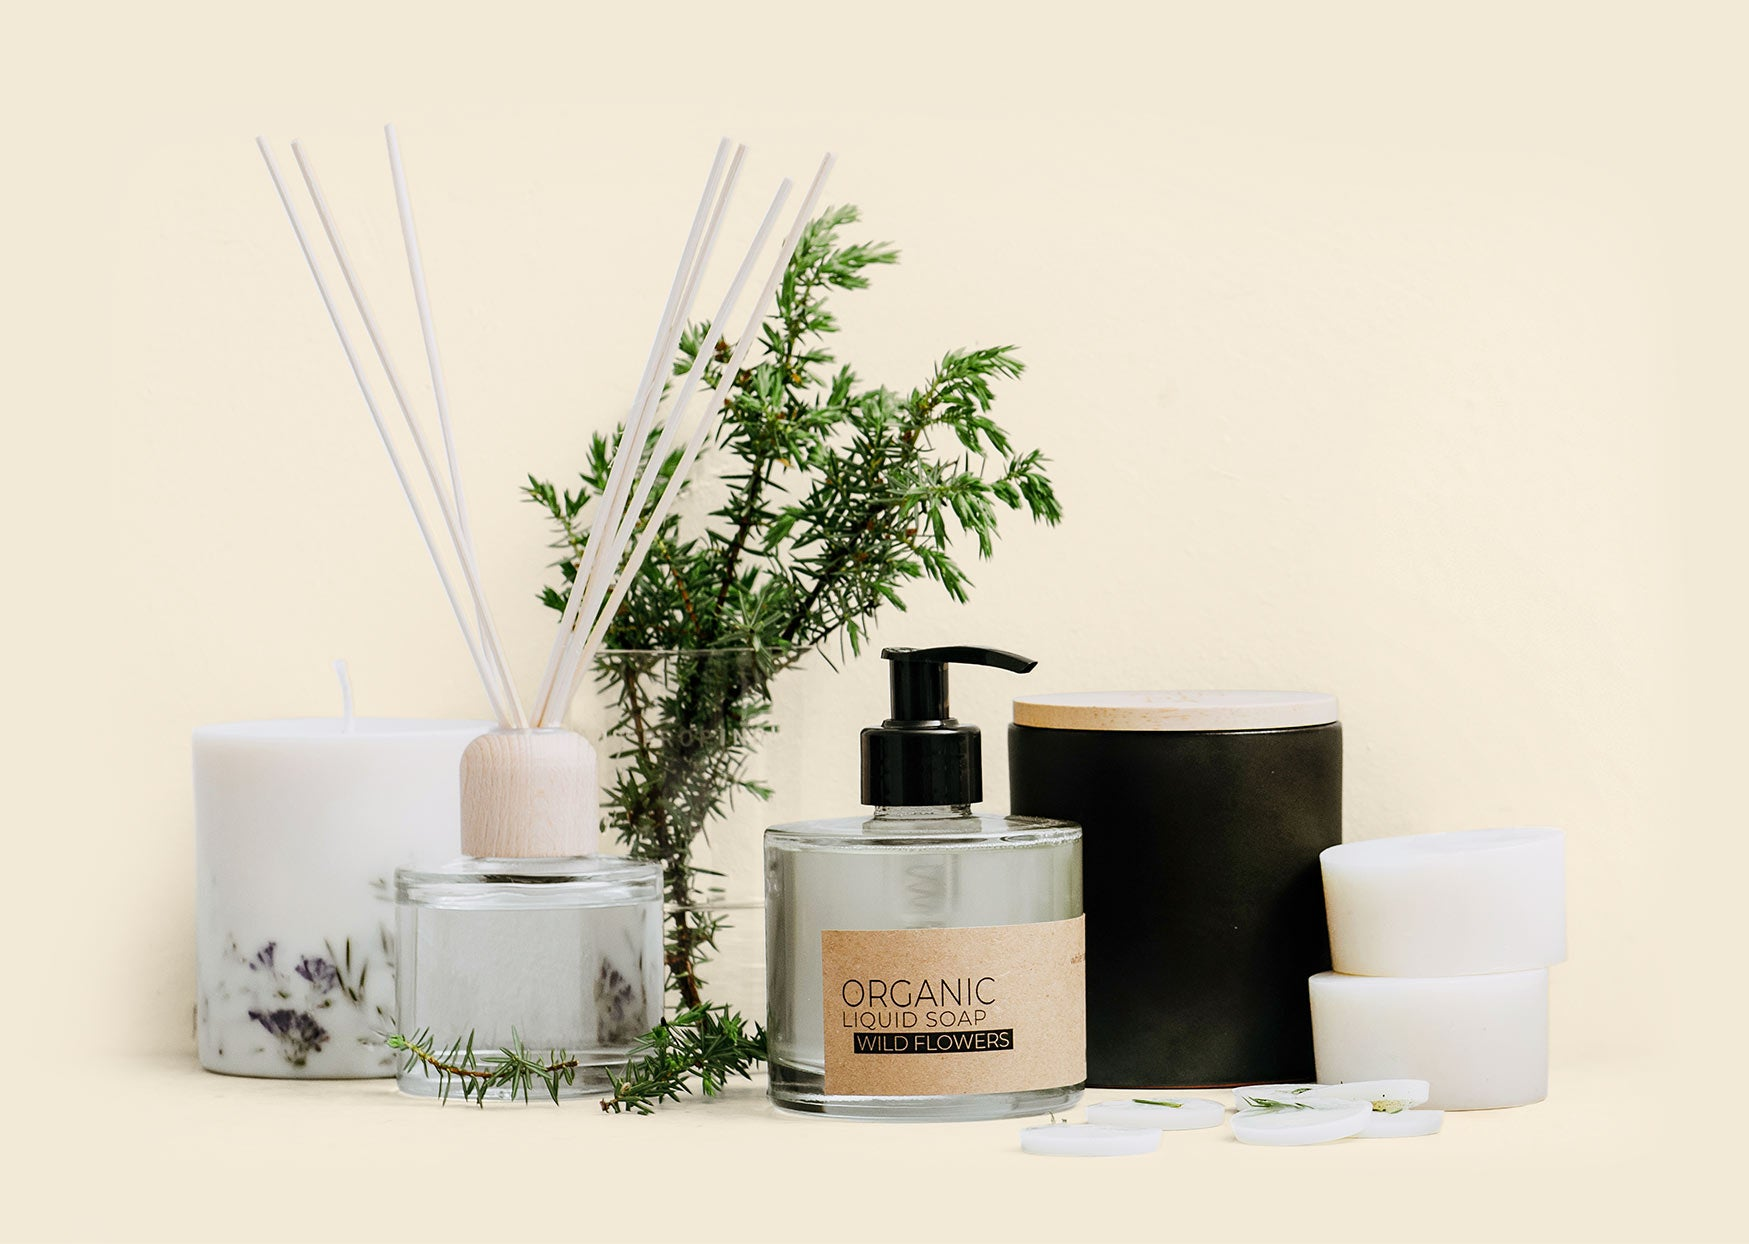 Eco soy wax candles and skincare